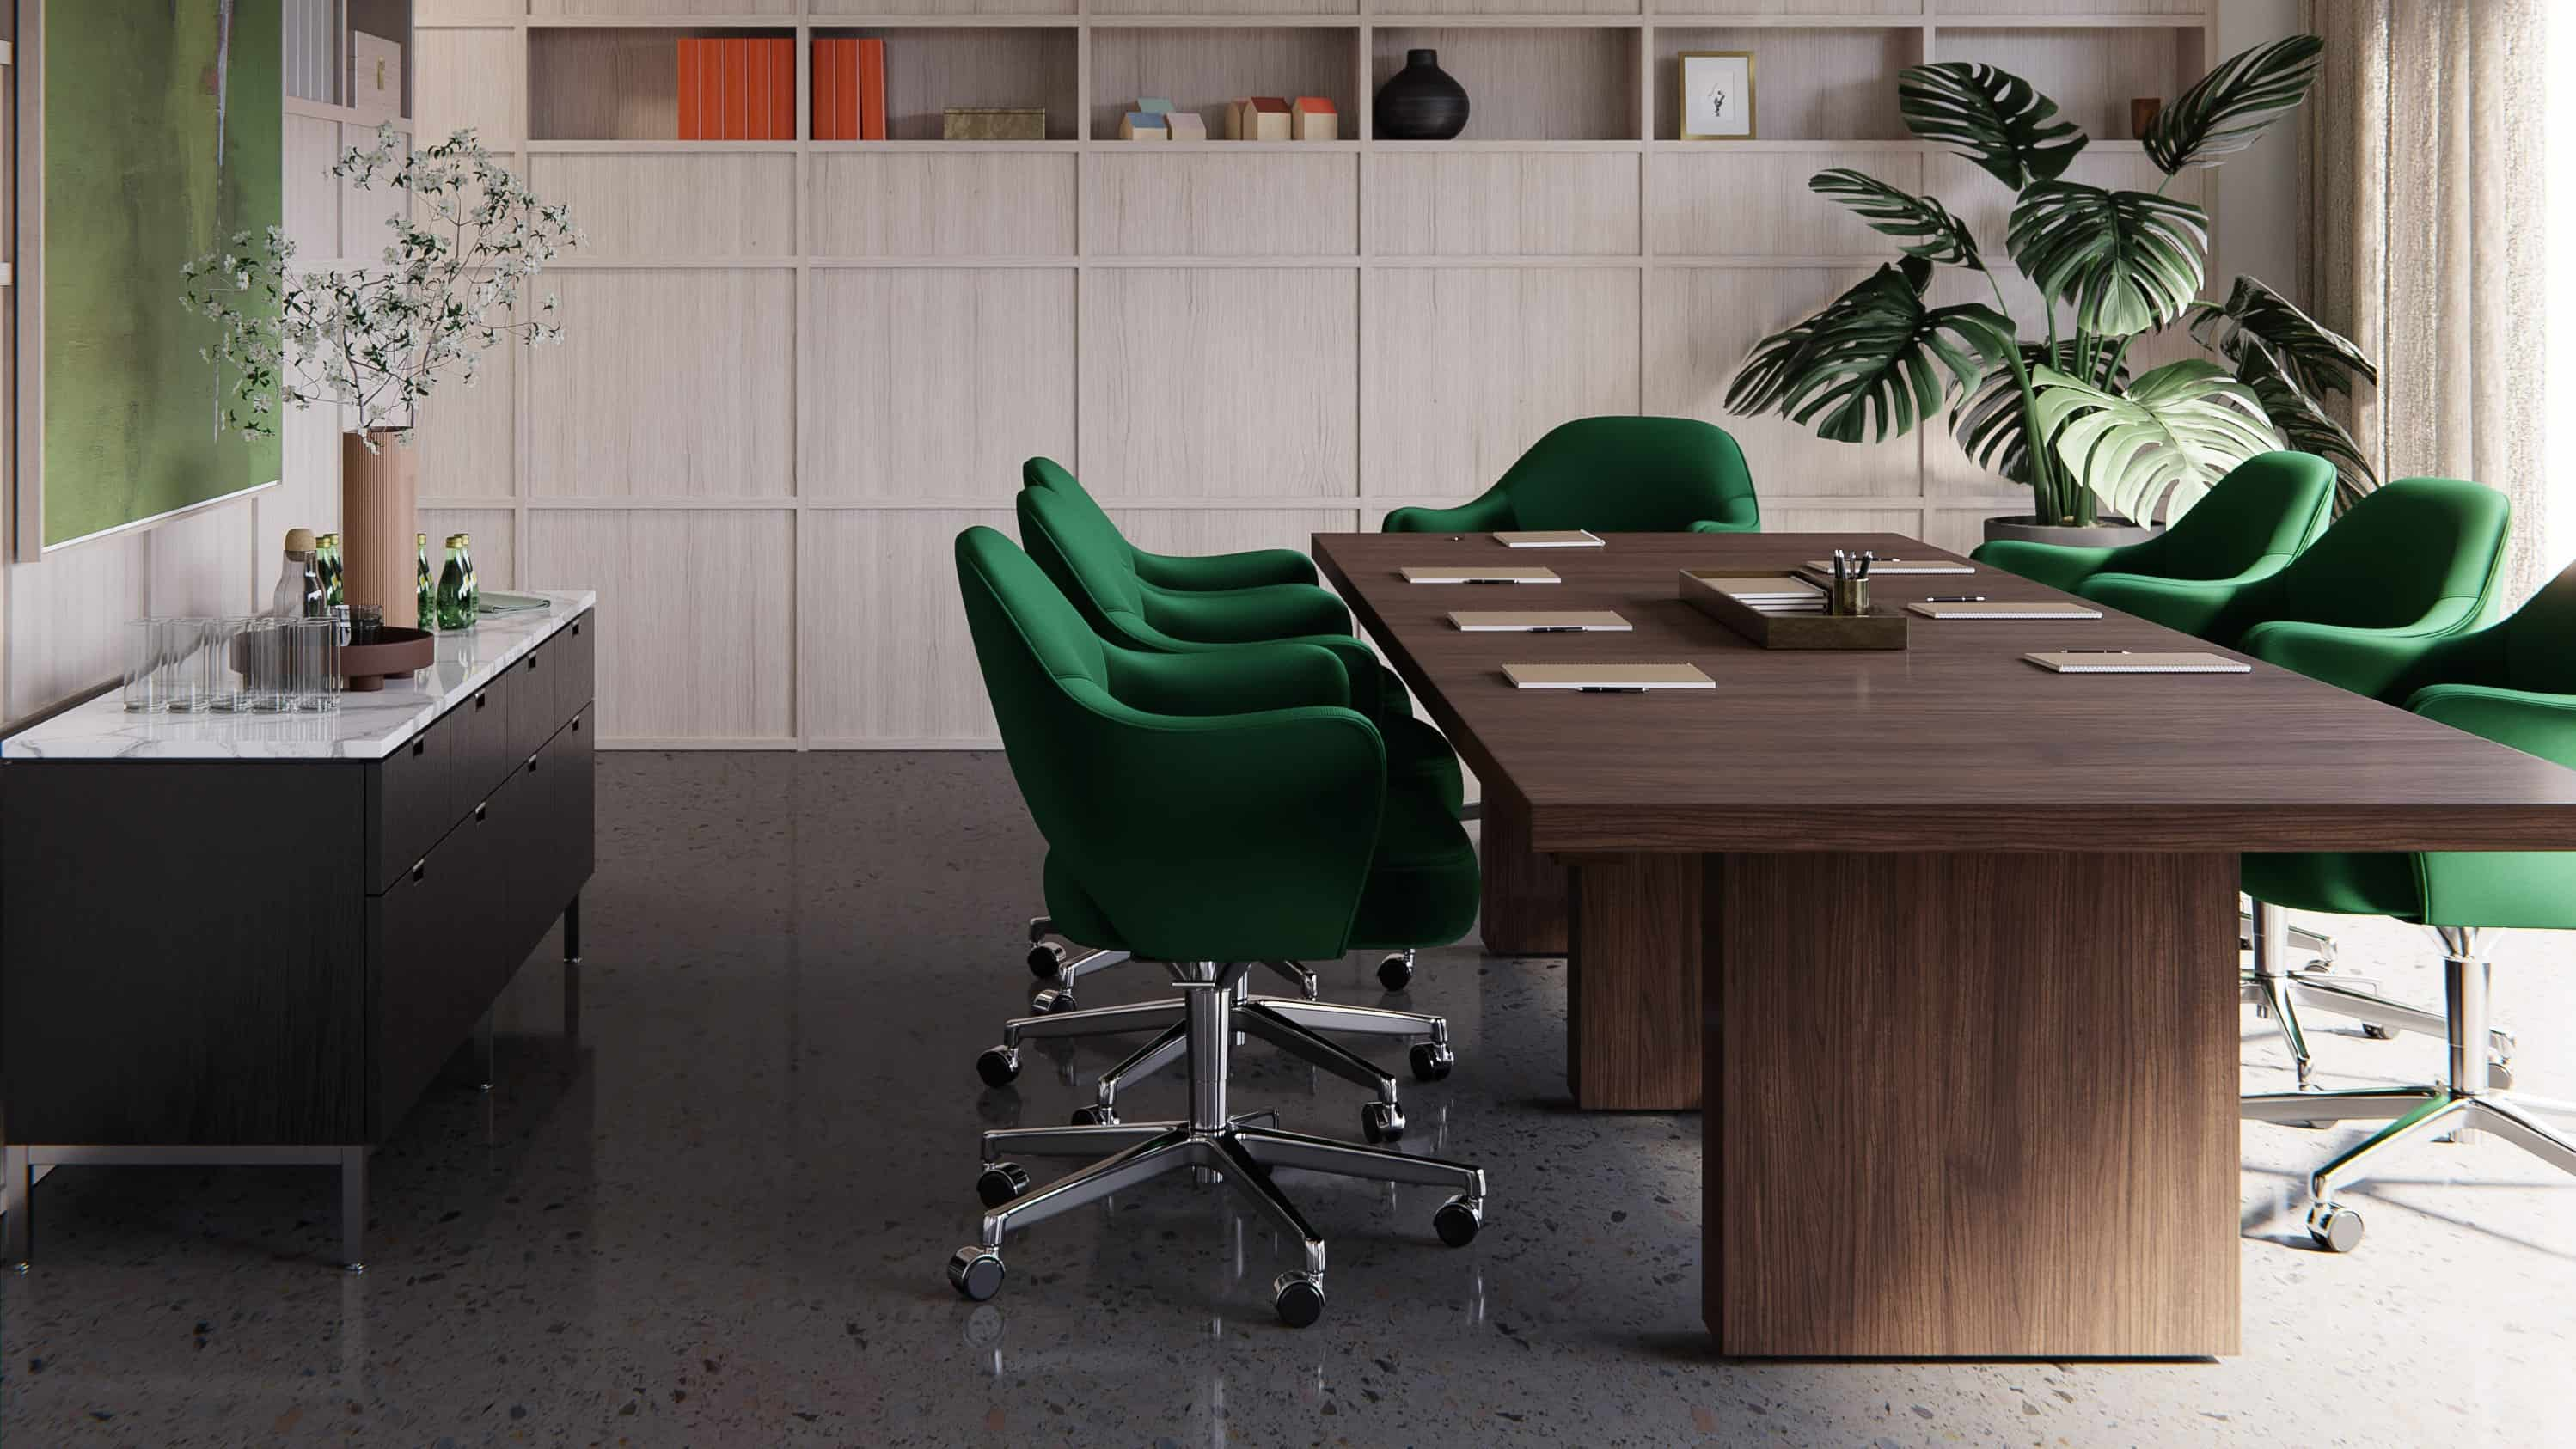 A conference room with wood table and emerald green chairs